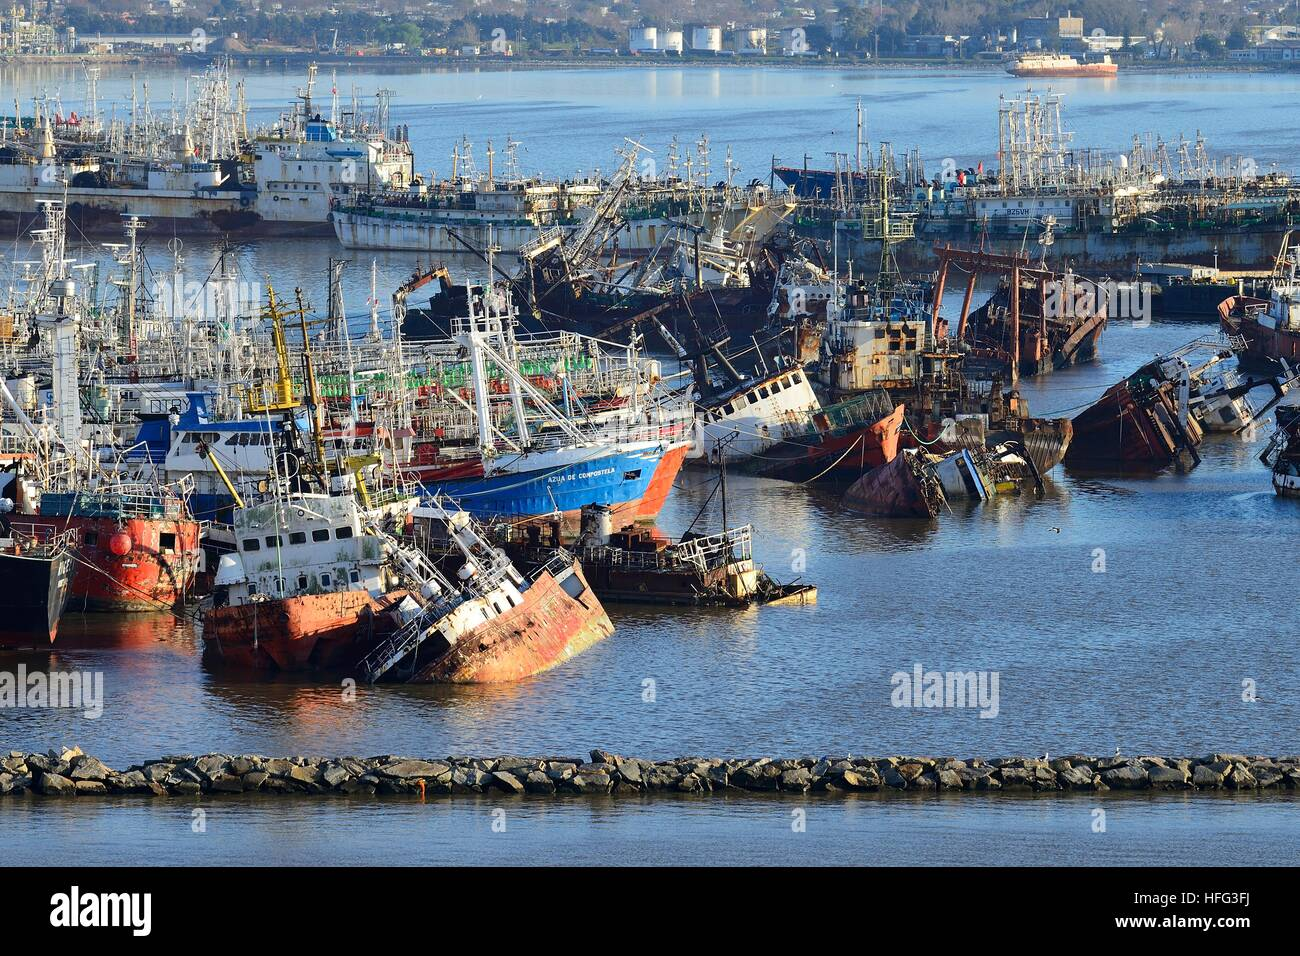 Rusted vessels in the harbor, Montevideo, Uruguay - Stock Image